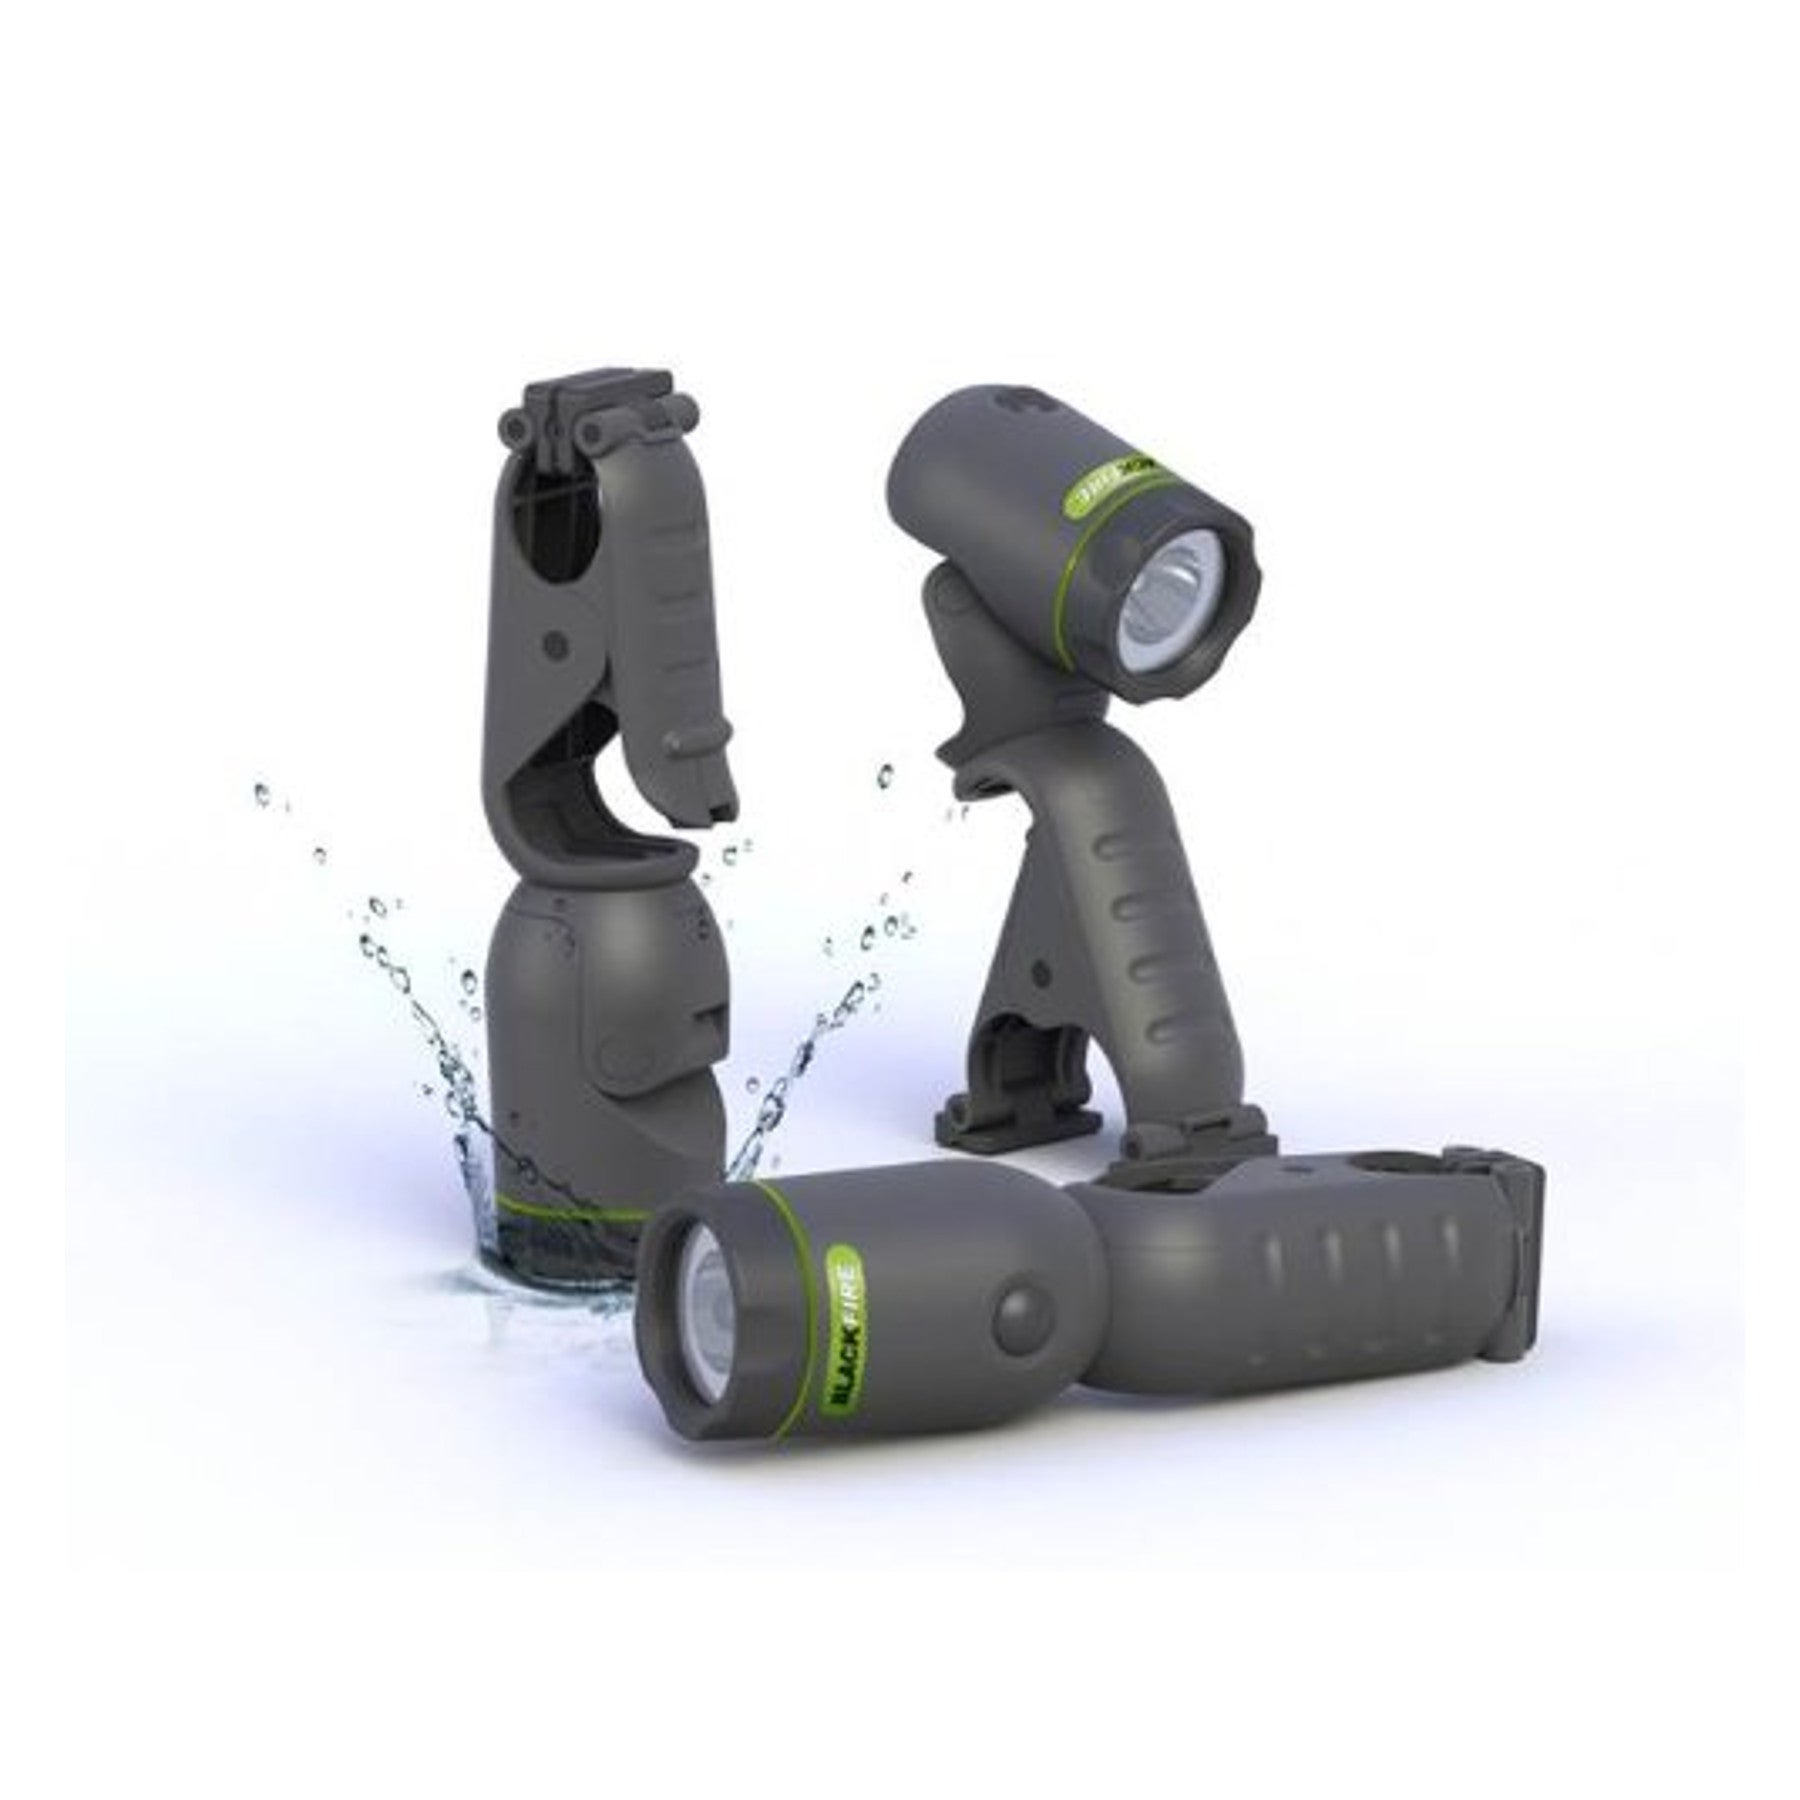 Blackfire Clamplight Waterproof